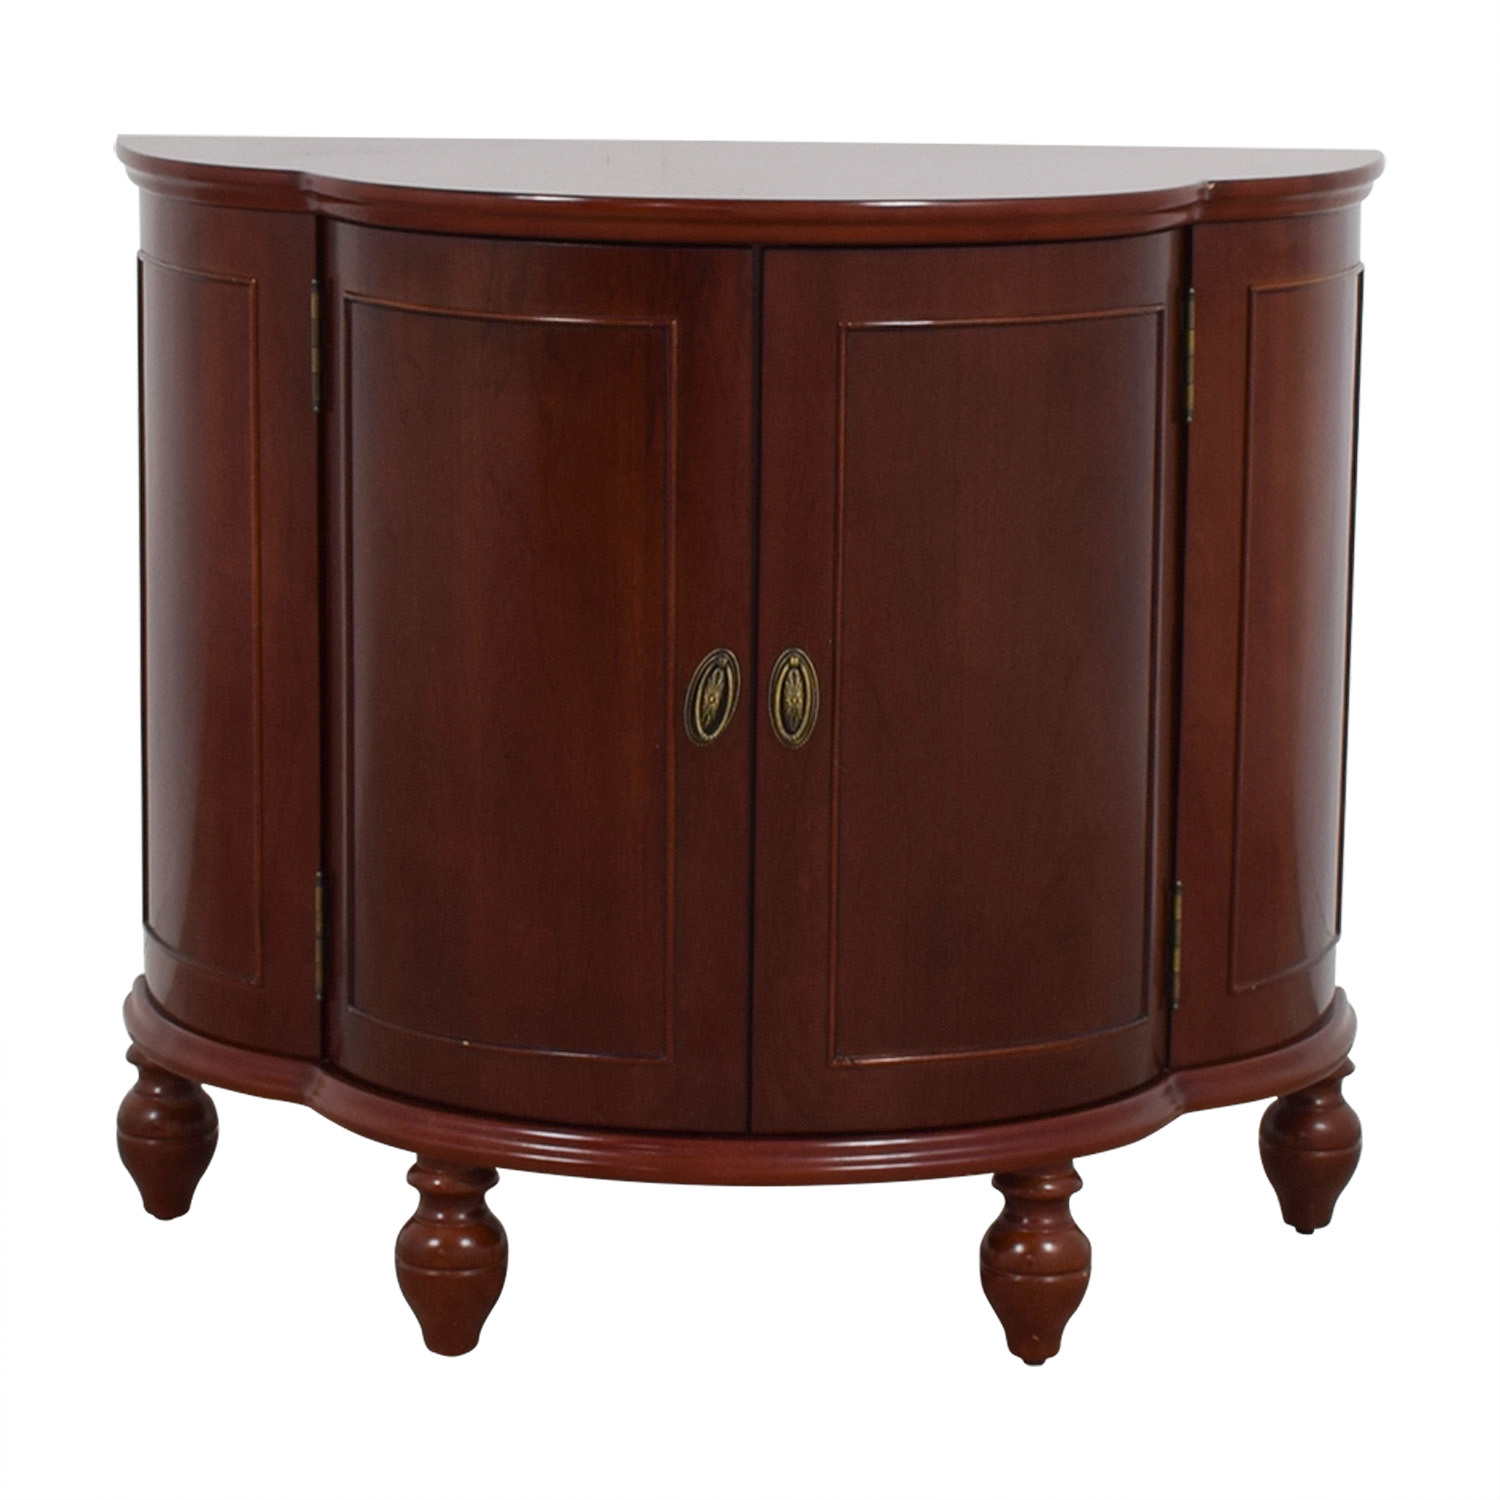 Bombay Company Bombay Company Wood Entertainment Bar Cabinets & Sideboards